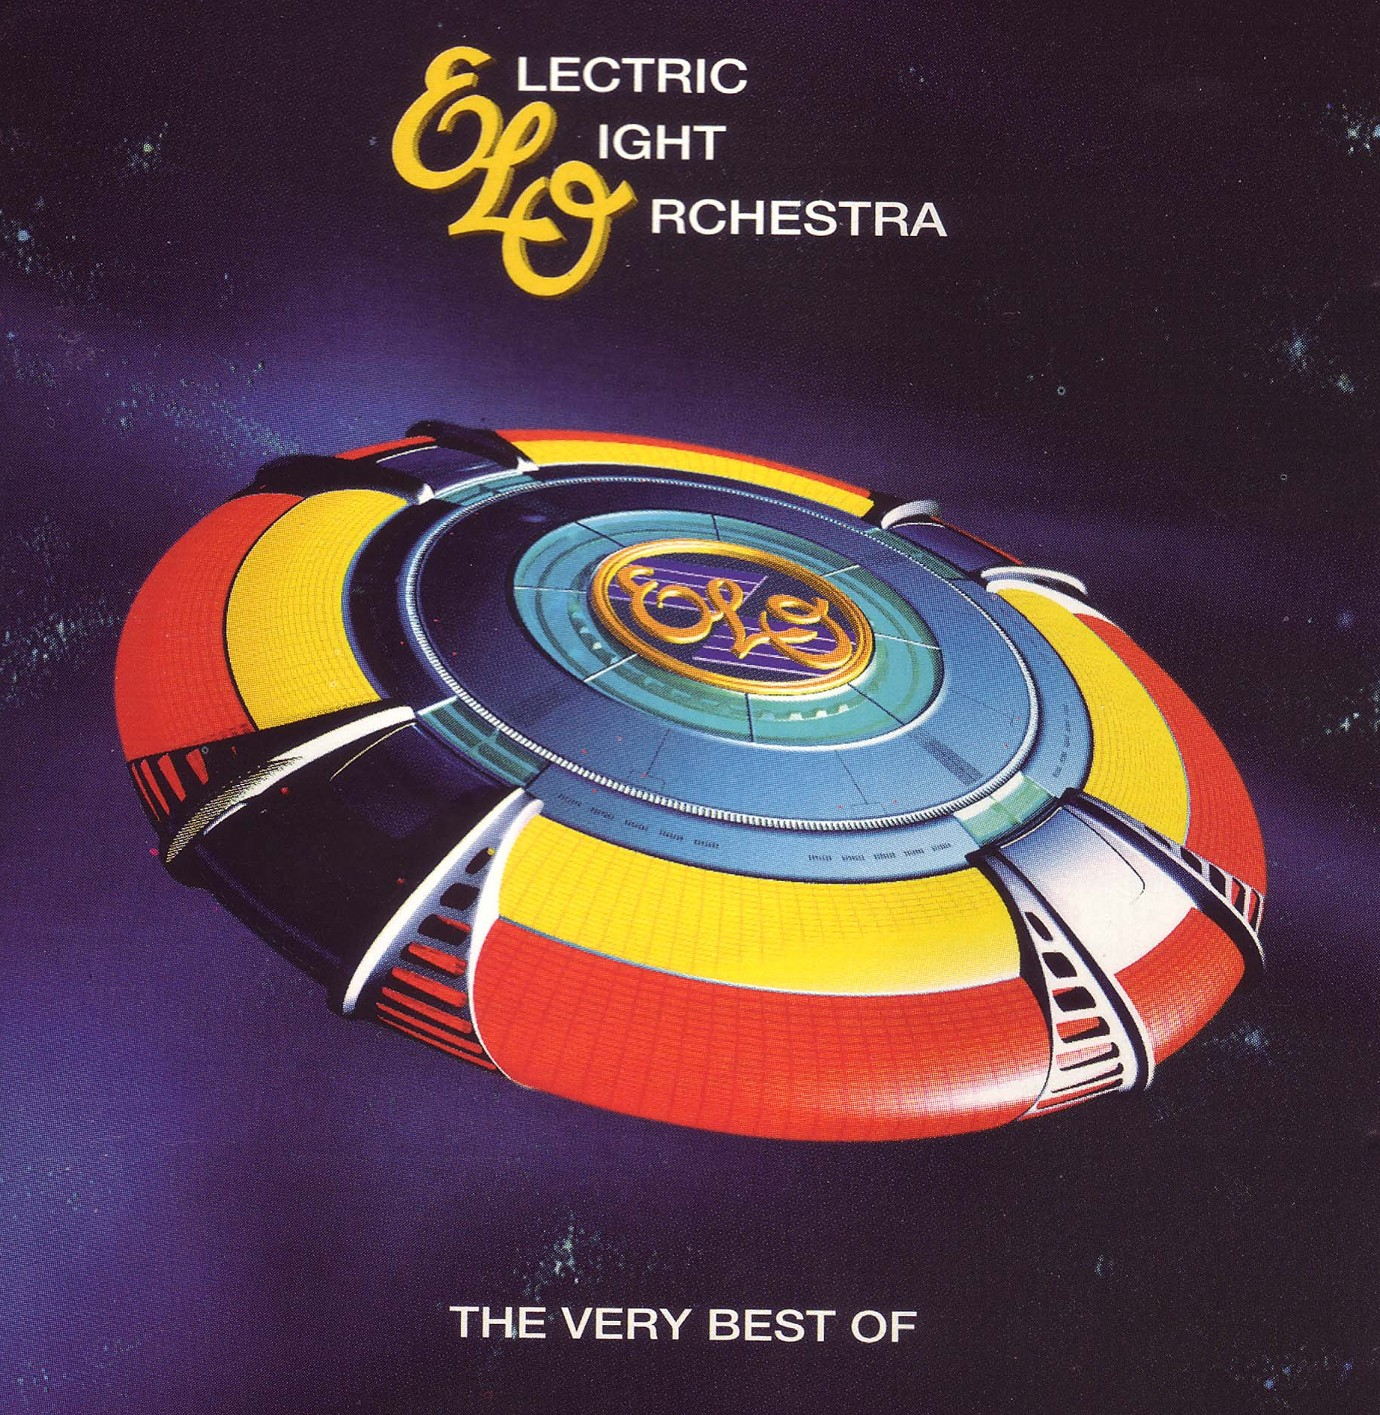 ELECTRIC LIGHT ORCHESTRA FREE Wallpapers Background images 1380x1415